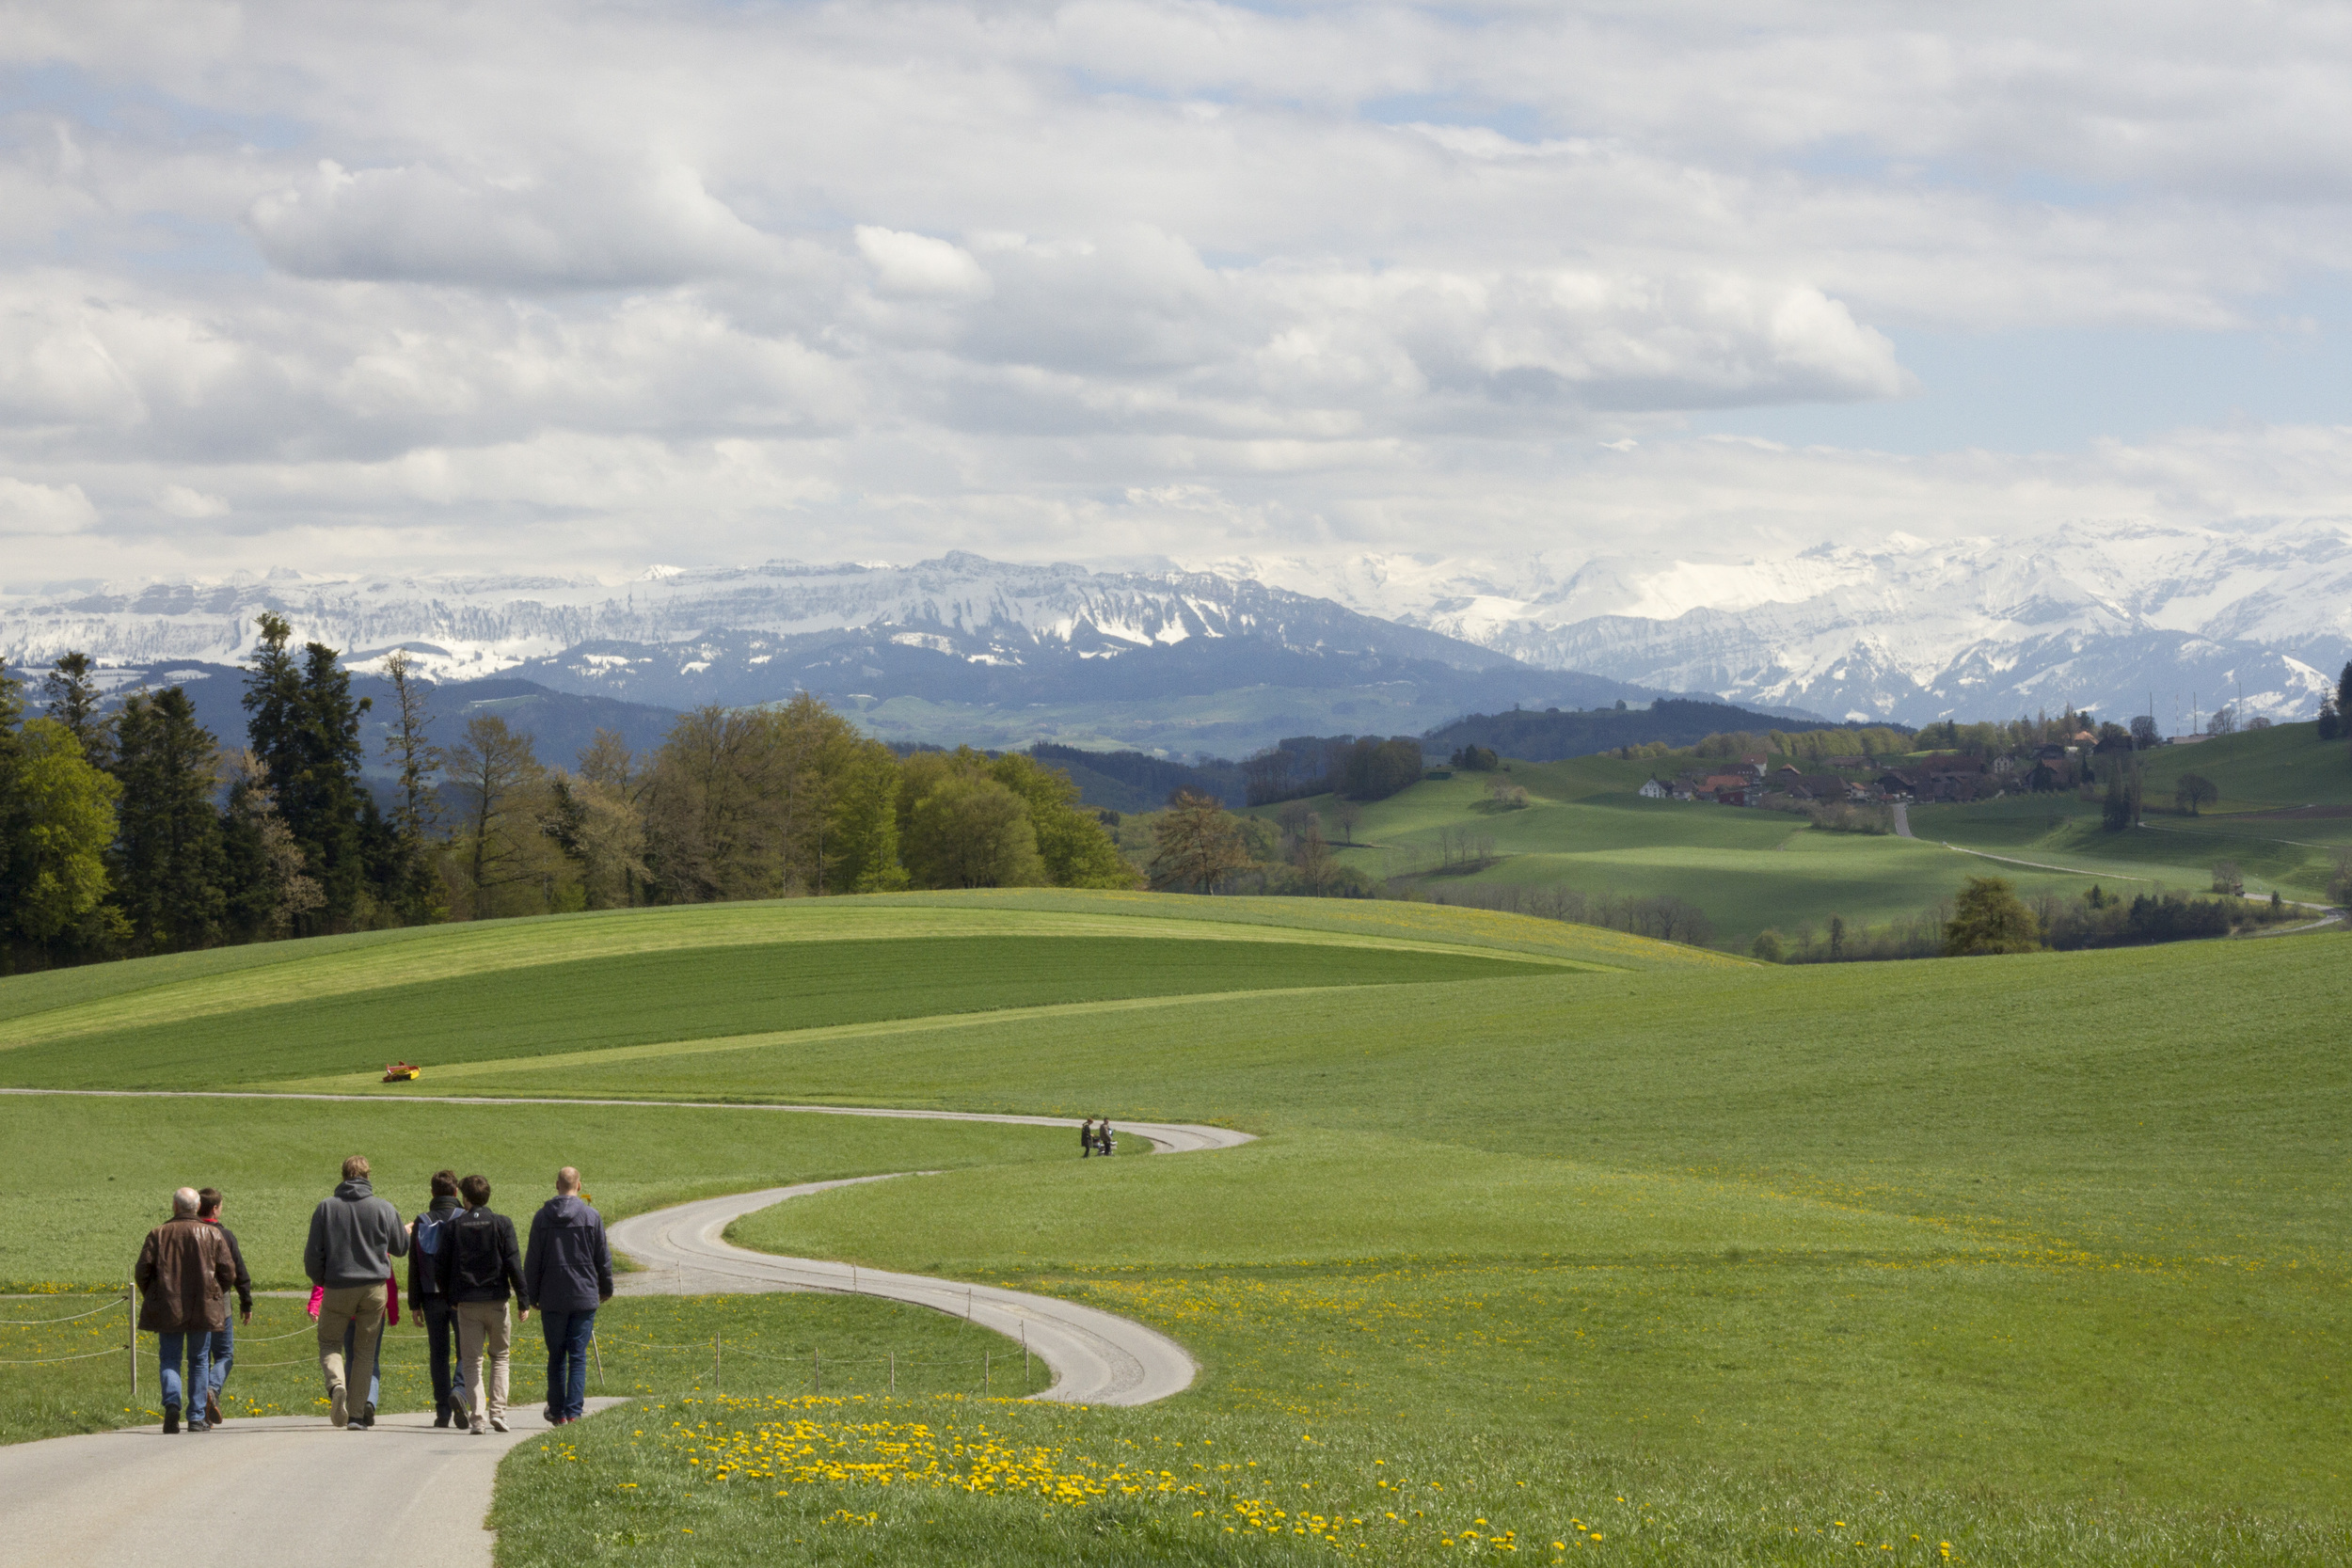 Aaron had a meeting in Bern, Switzerland in April. The group took a few hours from their meeting time and wandered through the green hills.